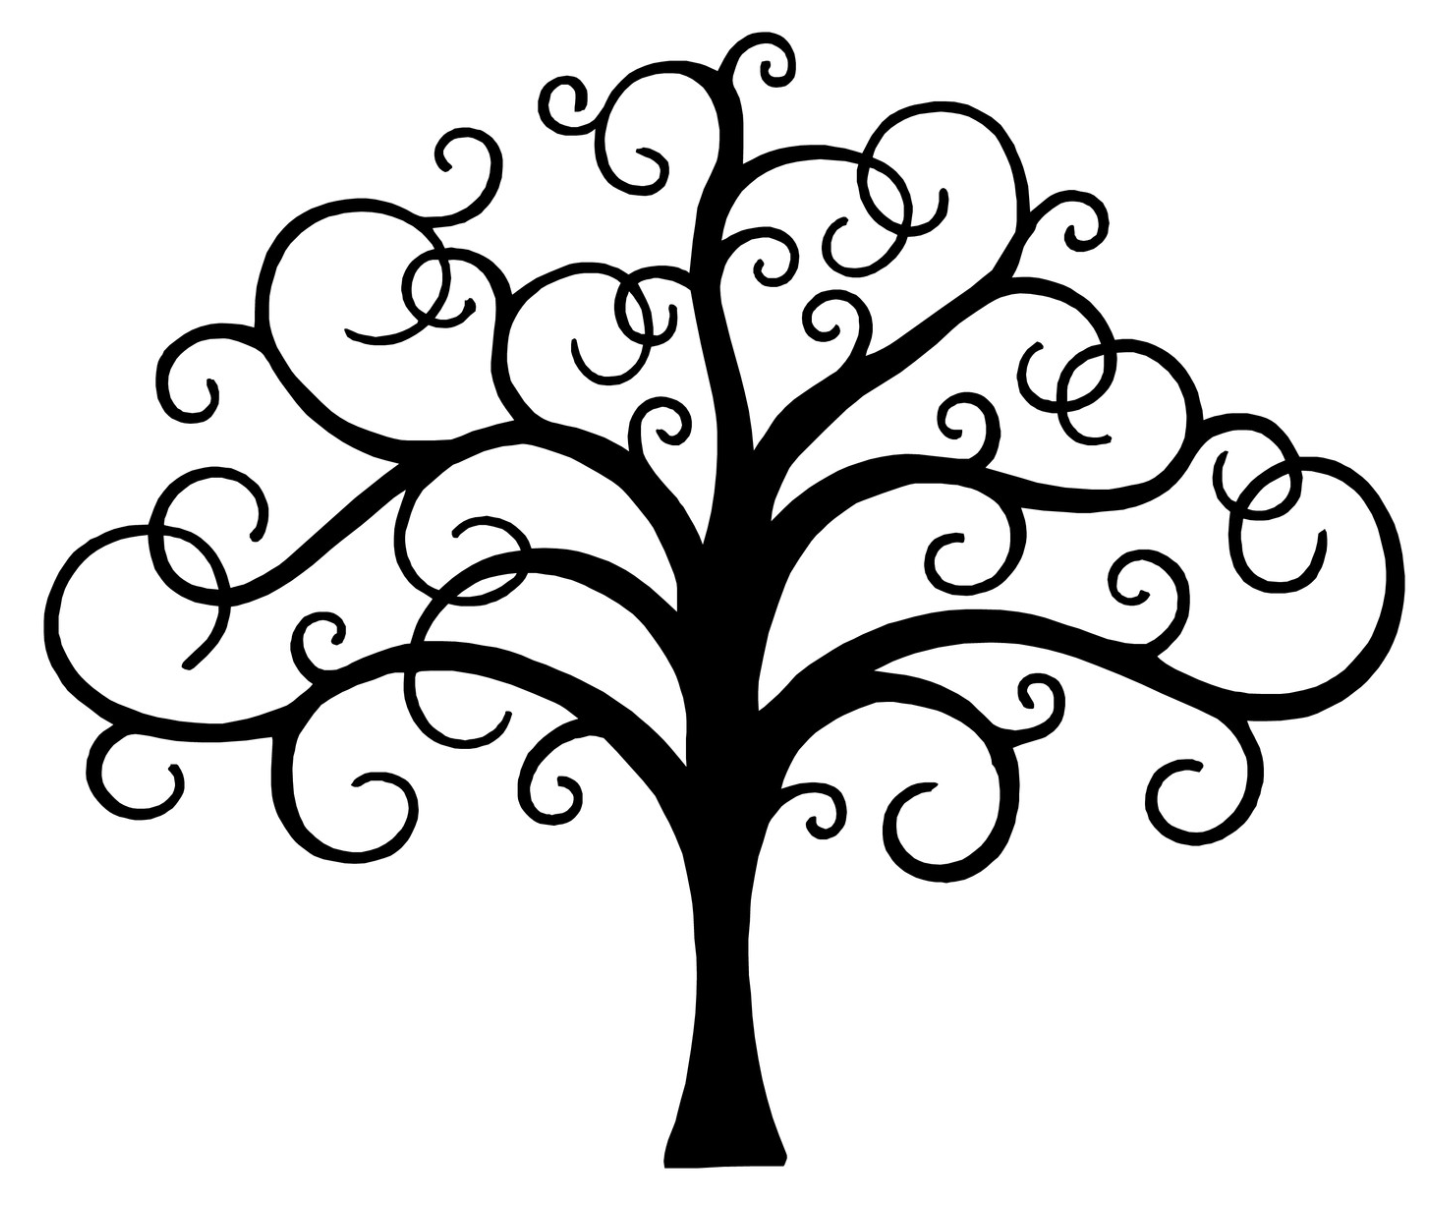 Cool Tree Drawing At Getdrawings Com Free For Personal Use Cool